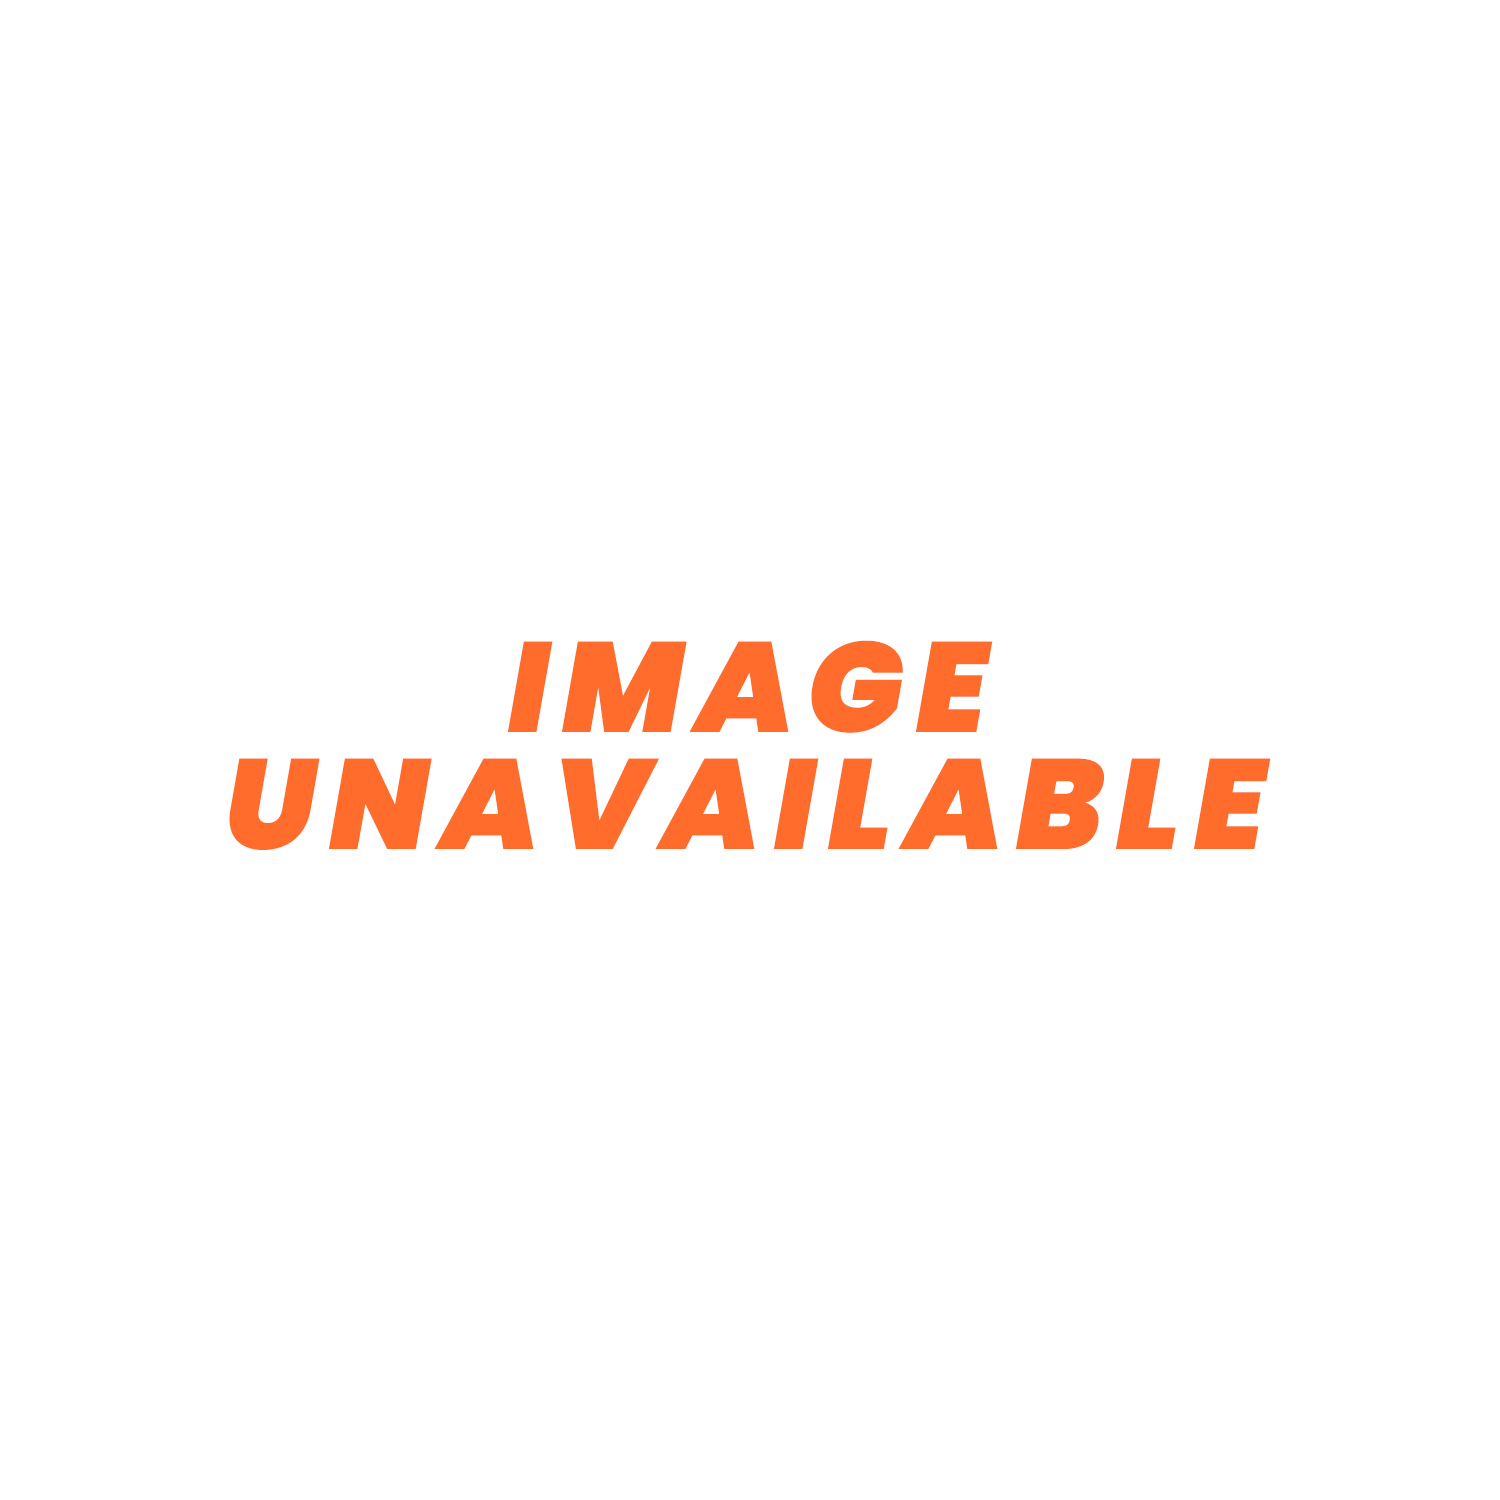 Jubilee® 'O' Clip 304 Stainless Steel 7 - 9mm Dia